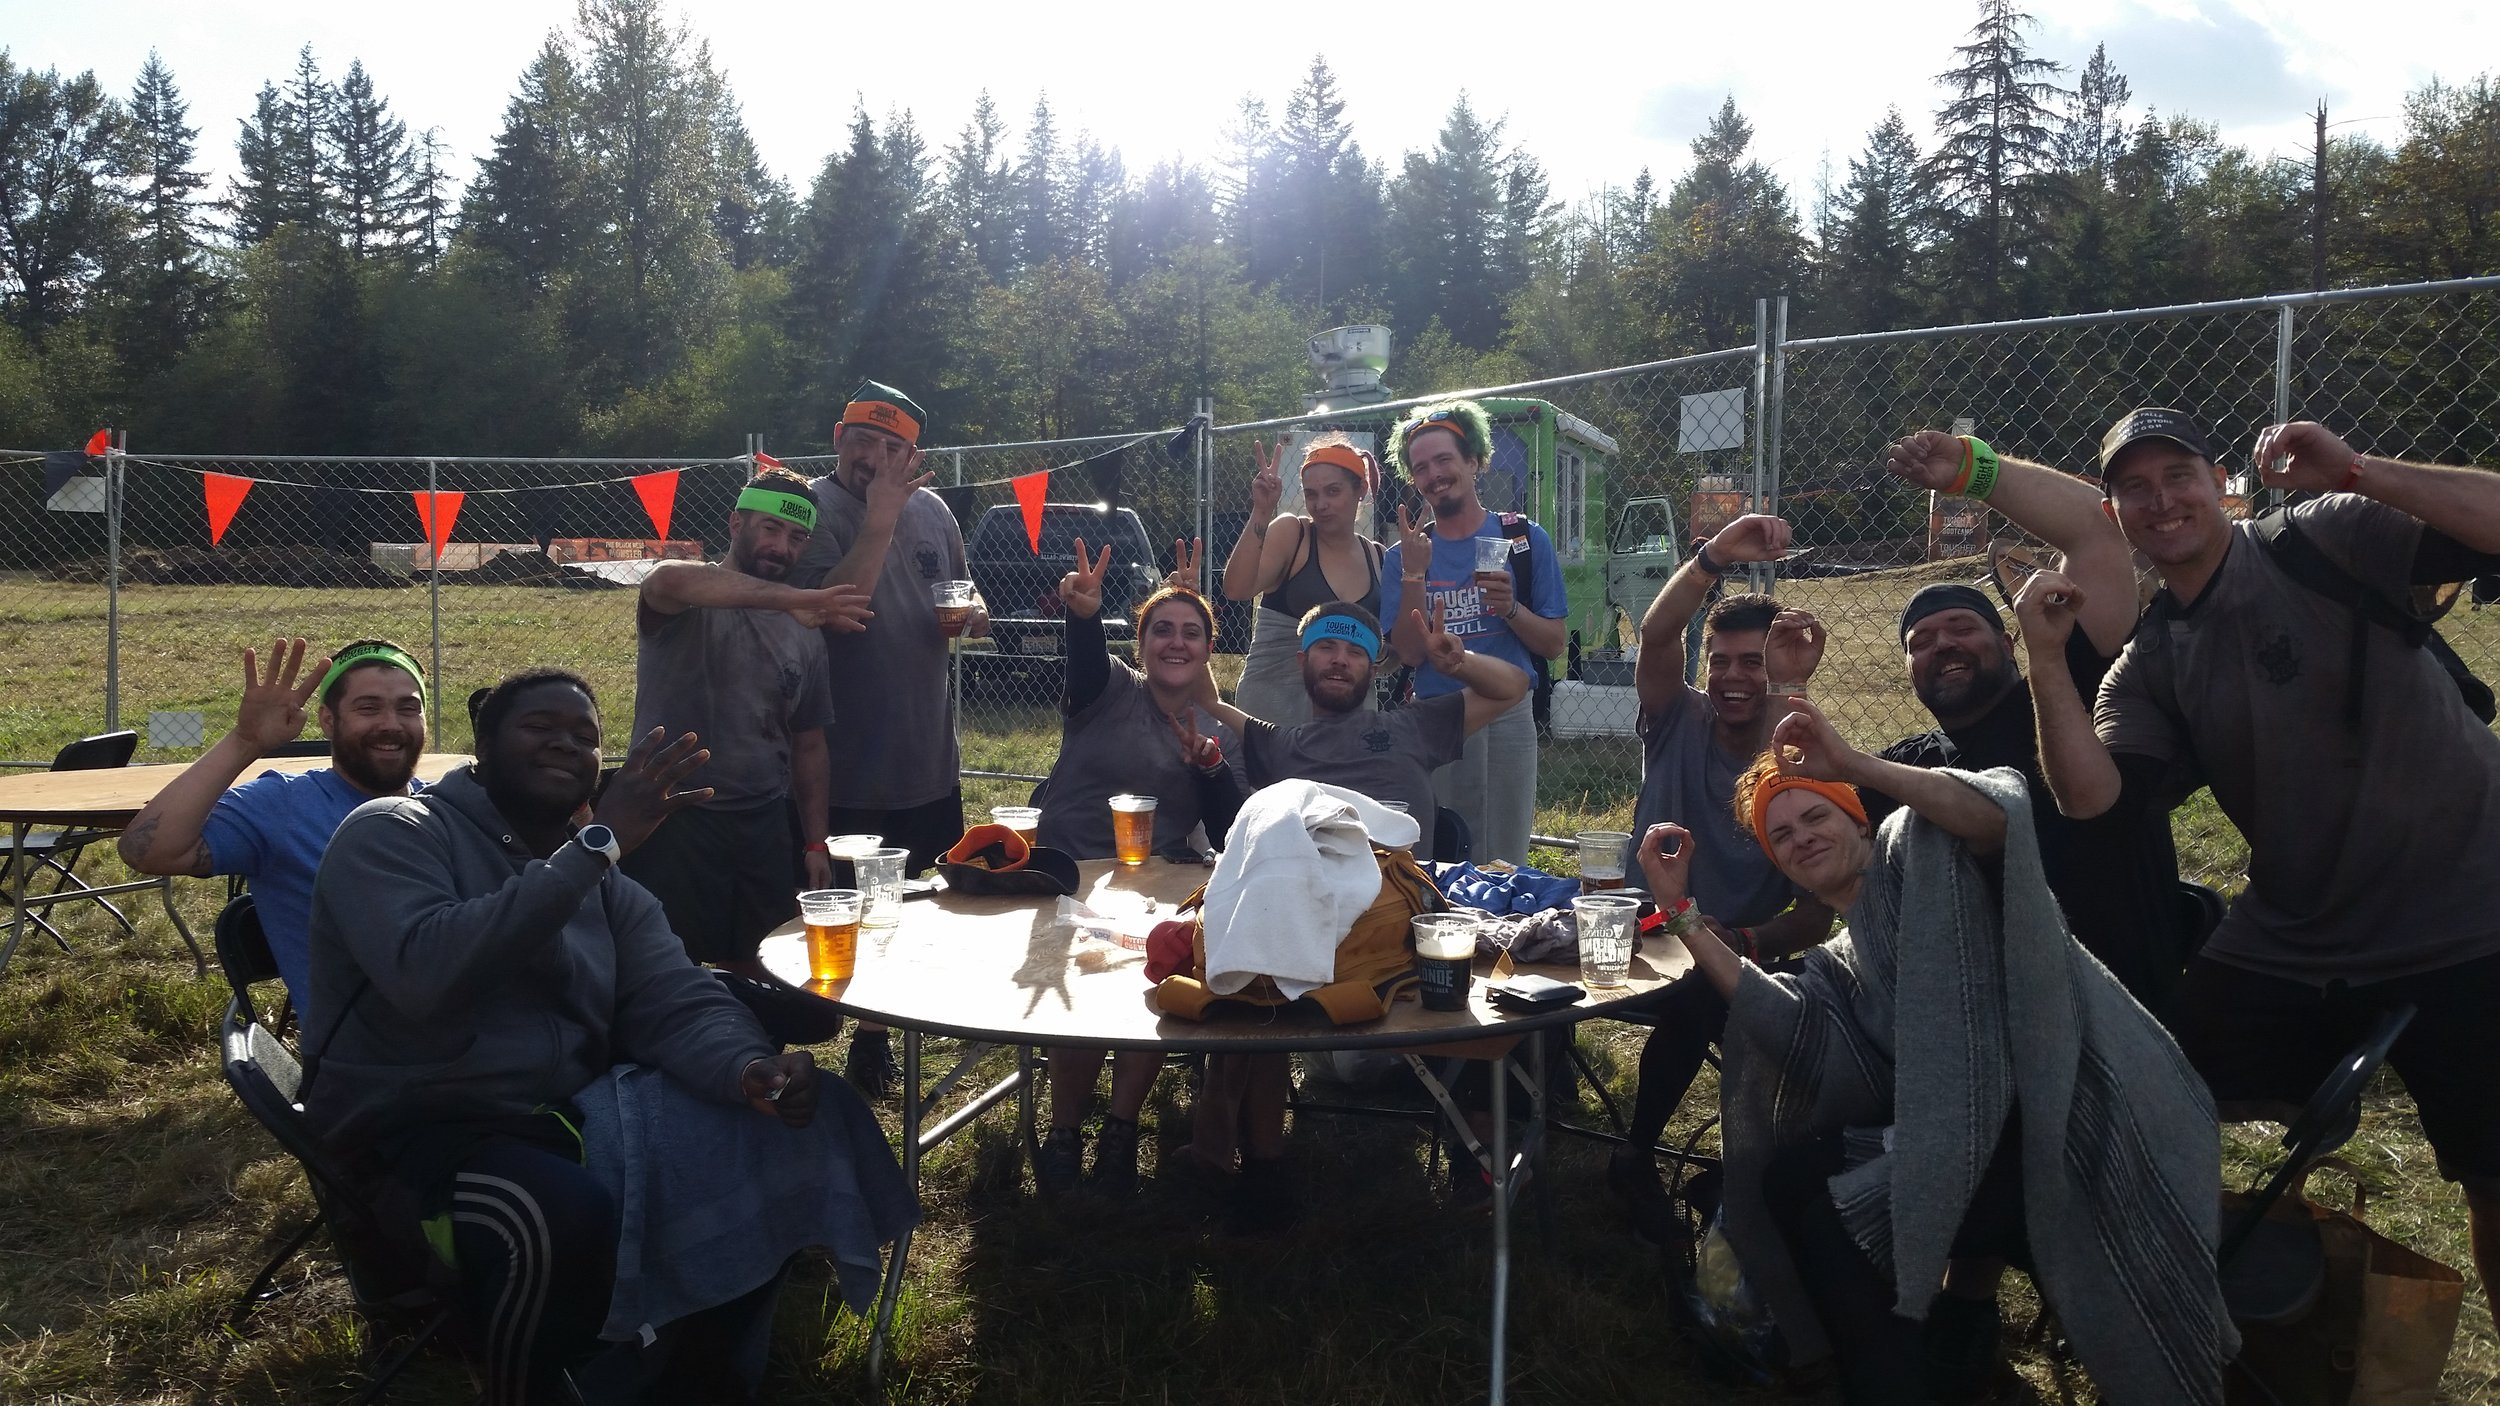 Team Destination HWY 420 after completing the 2018 Seattle Tough Mudder. Fueled by cannabis, we crushed this endurance obstacle course. We crawled through mud, swam through ice water, and even got shocked with electricity, but none of these obstacles were able to keep us away from the finish line.